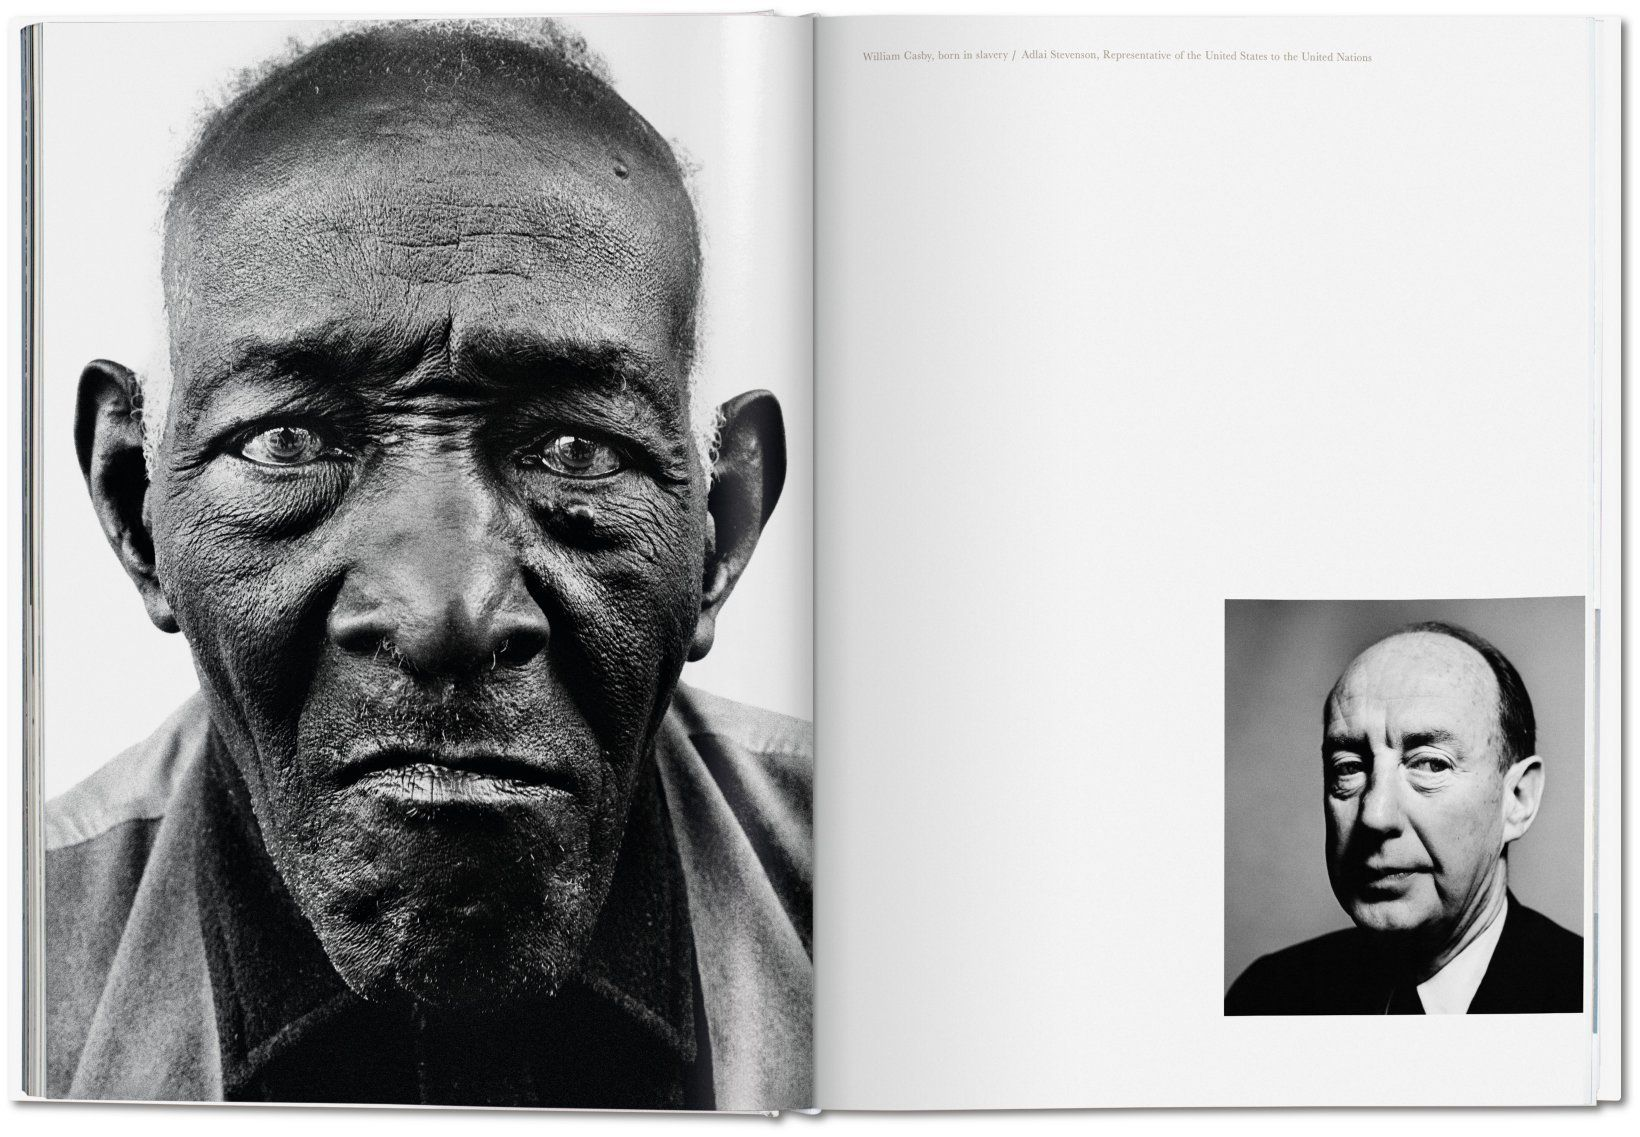 essay on richard avedon The opportunities to access the celebrities and make their photographs increased for richard avedon with the growth of his notoriety the public in general an.